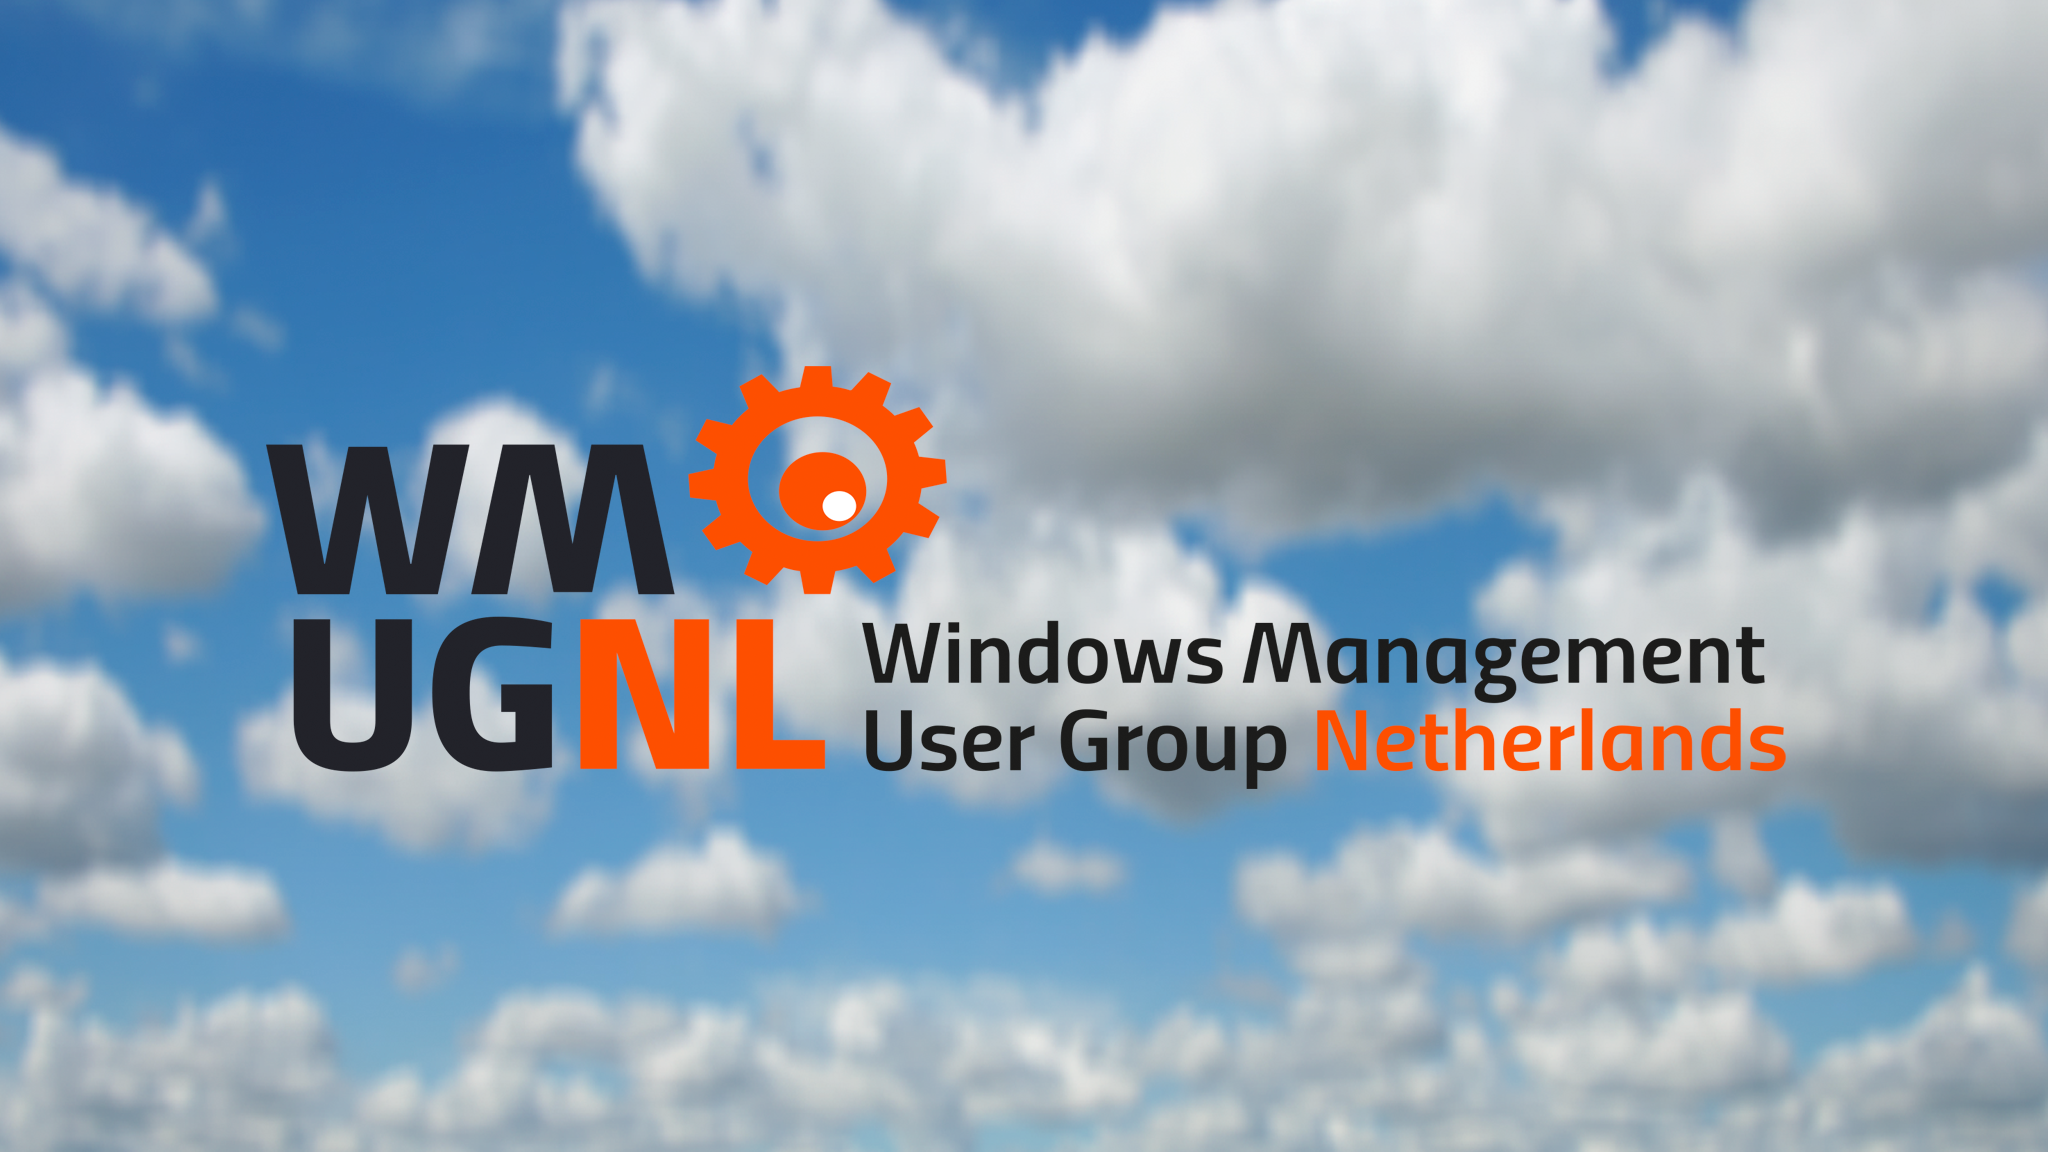 Windows Management User Group Netherlands